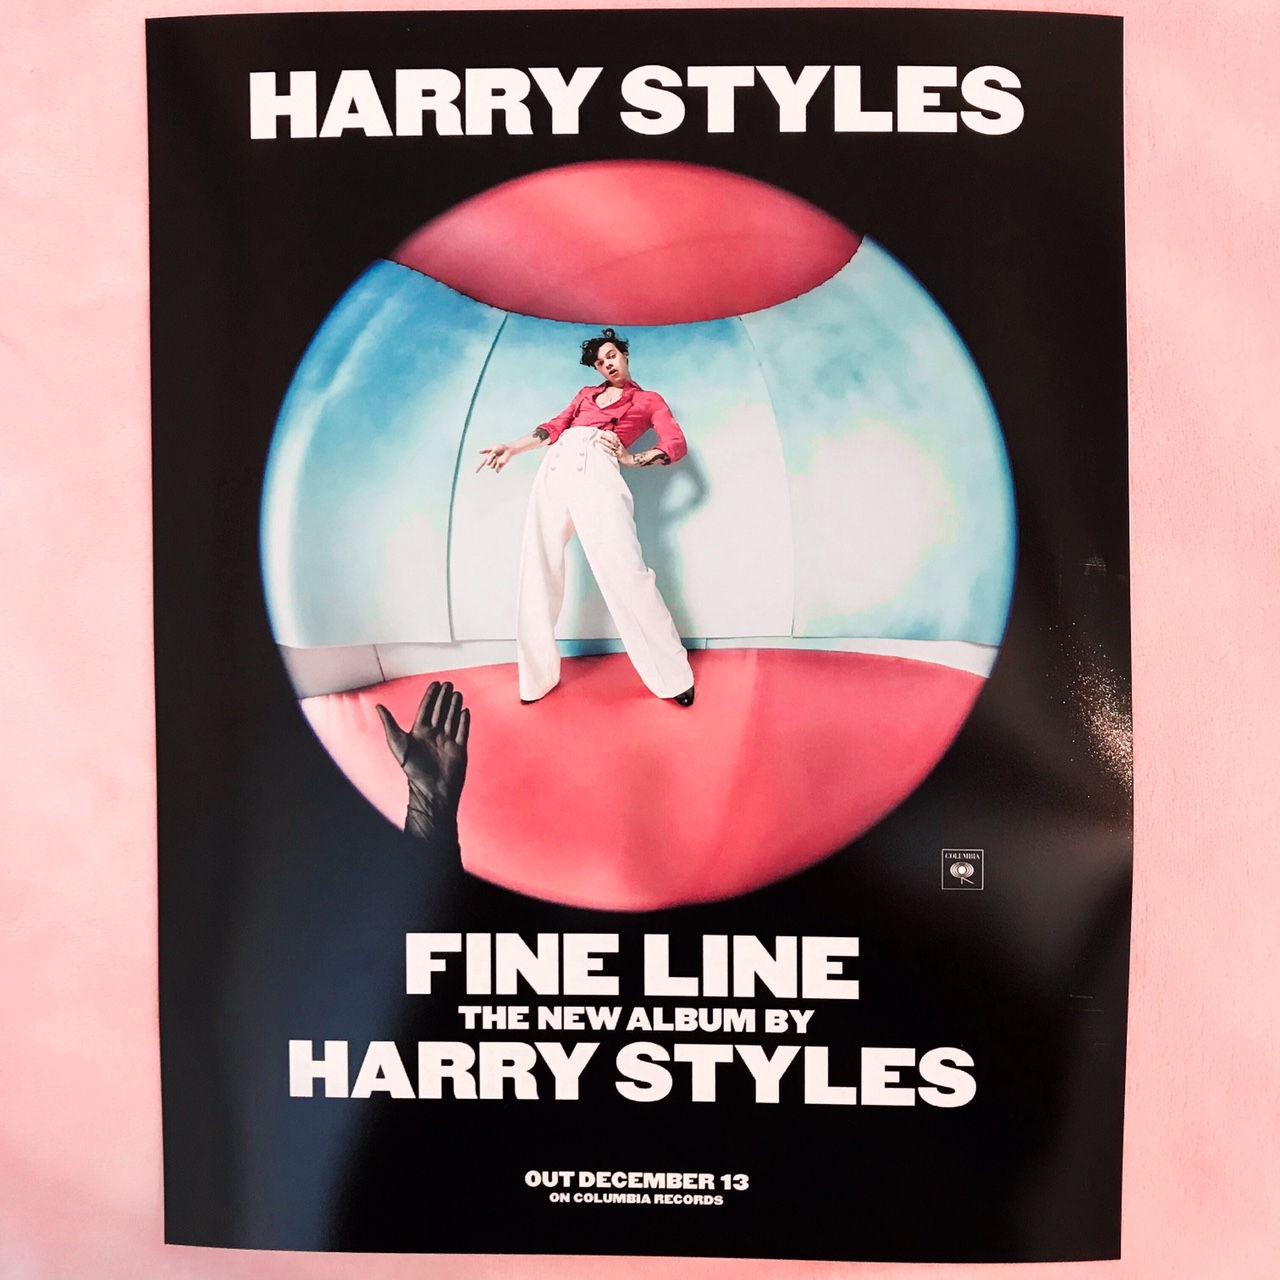 harry styles fine line posters 11x14 with glossy